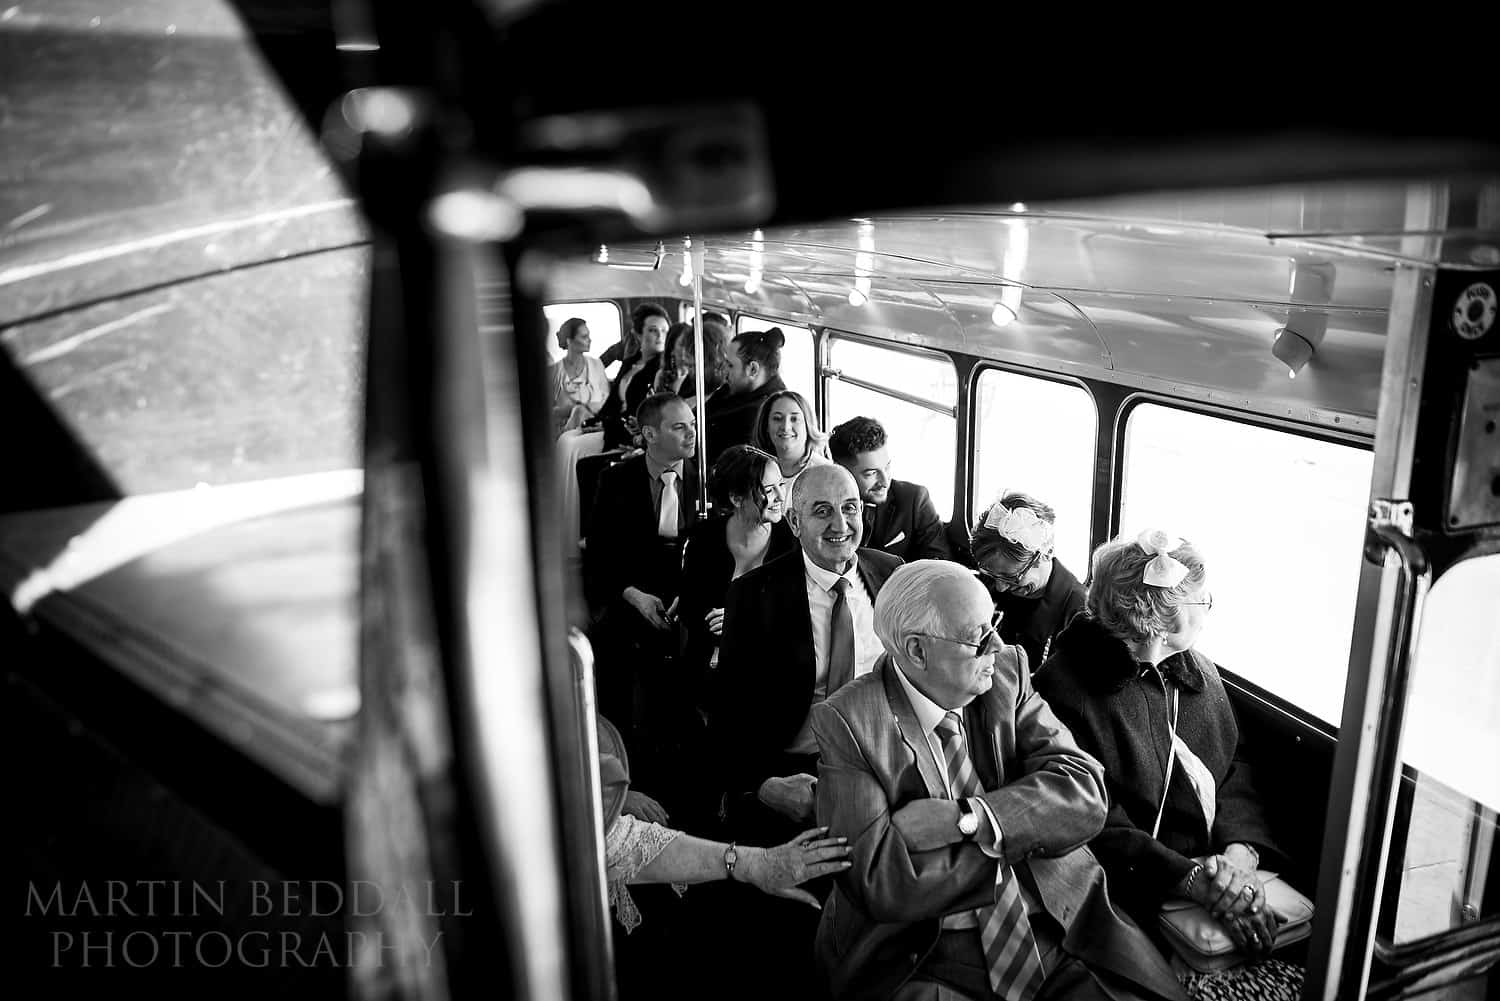 Wedding guests on the bus